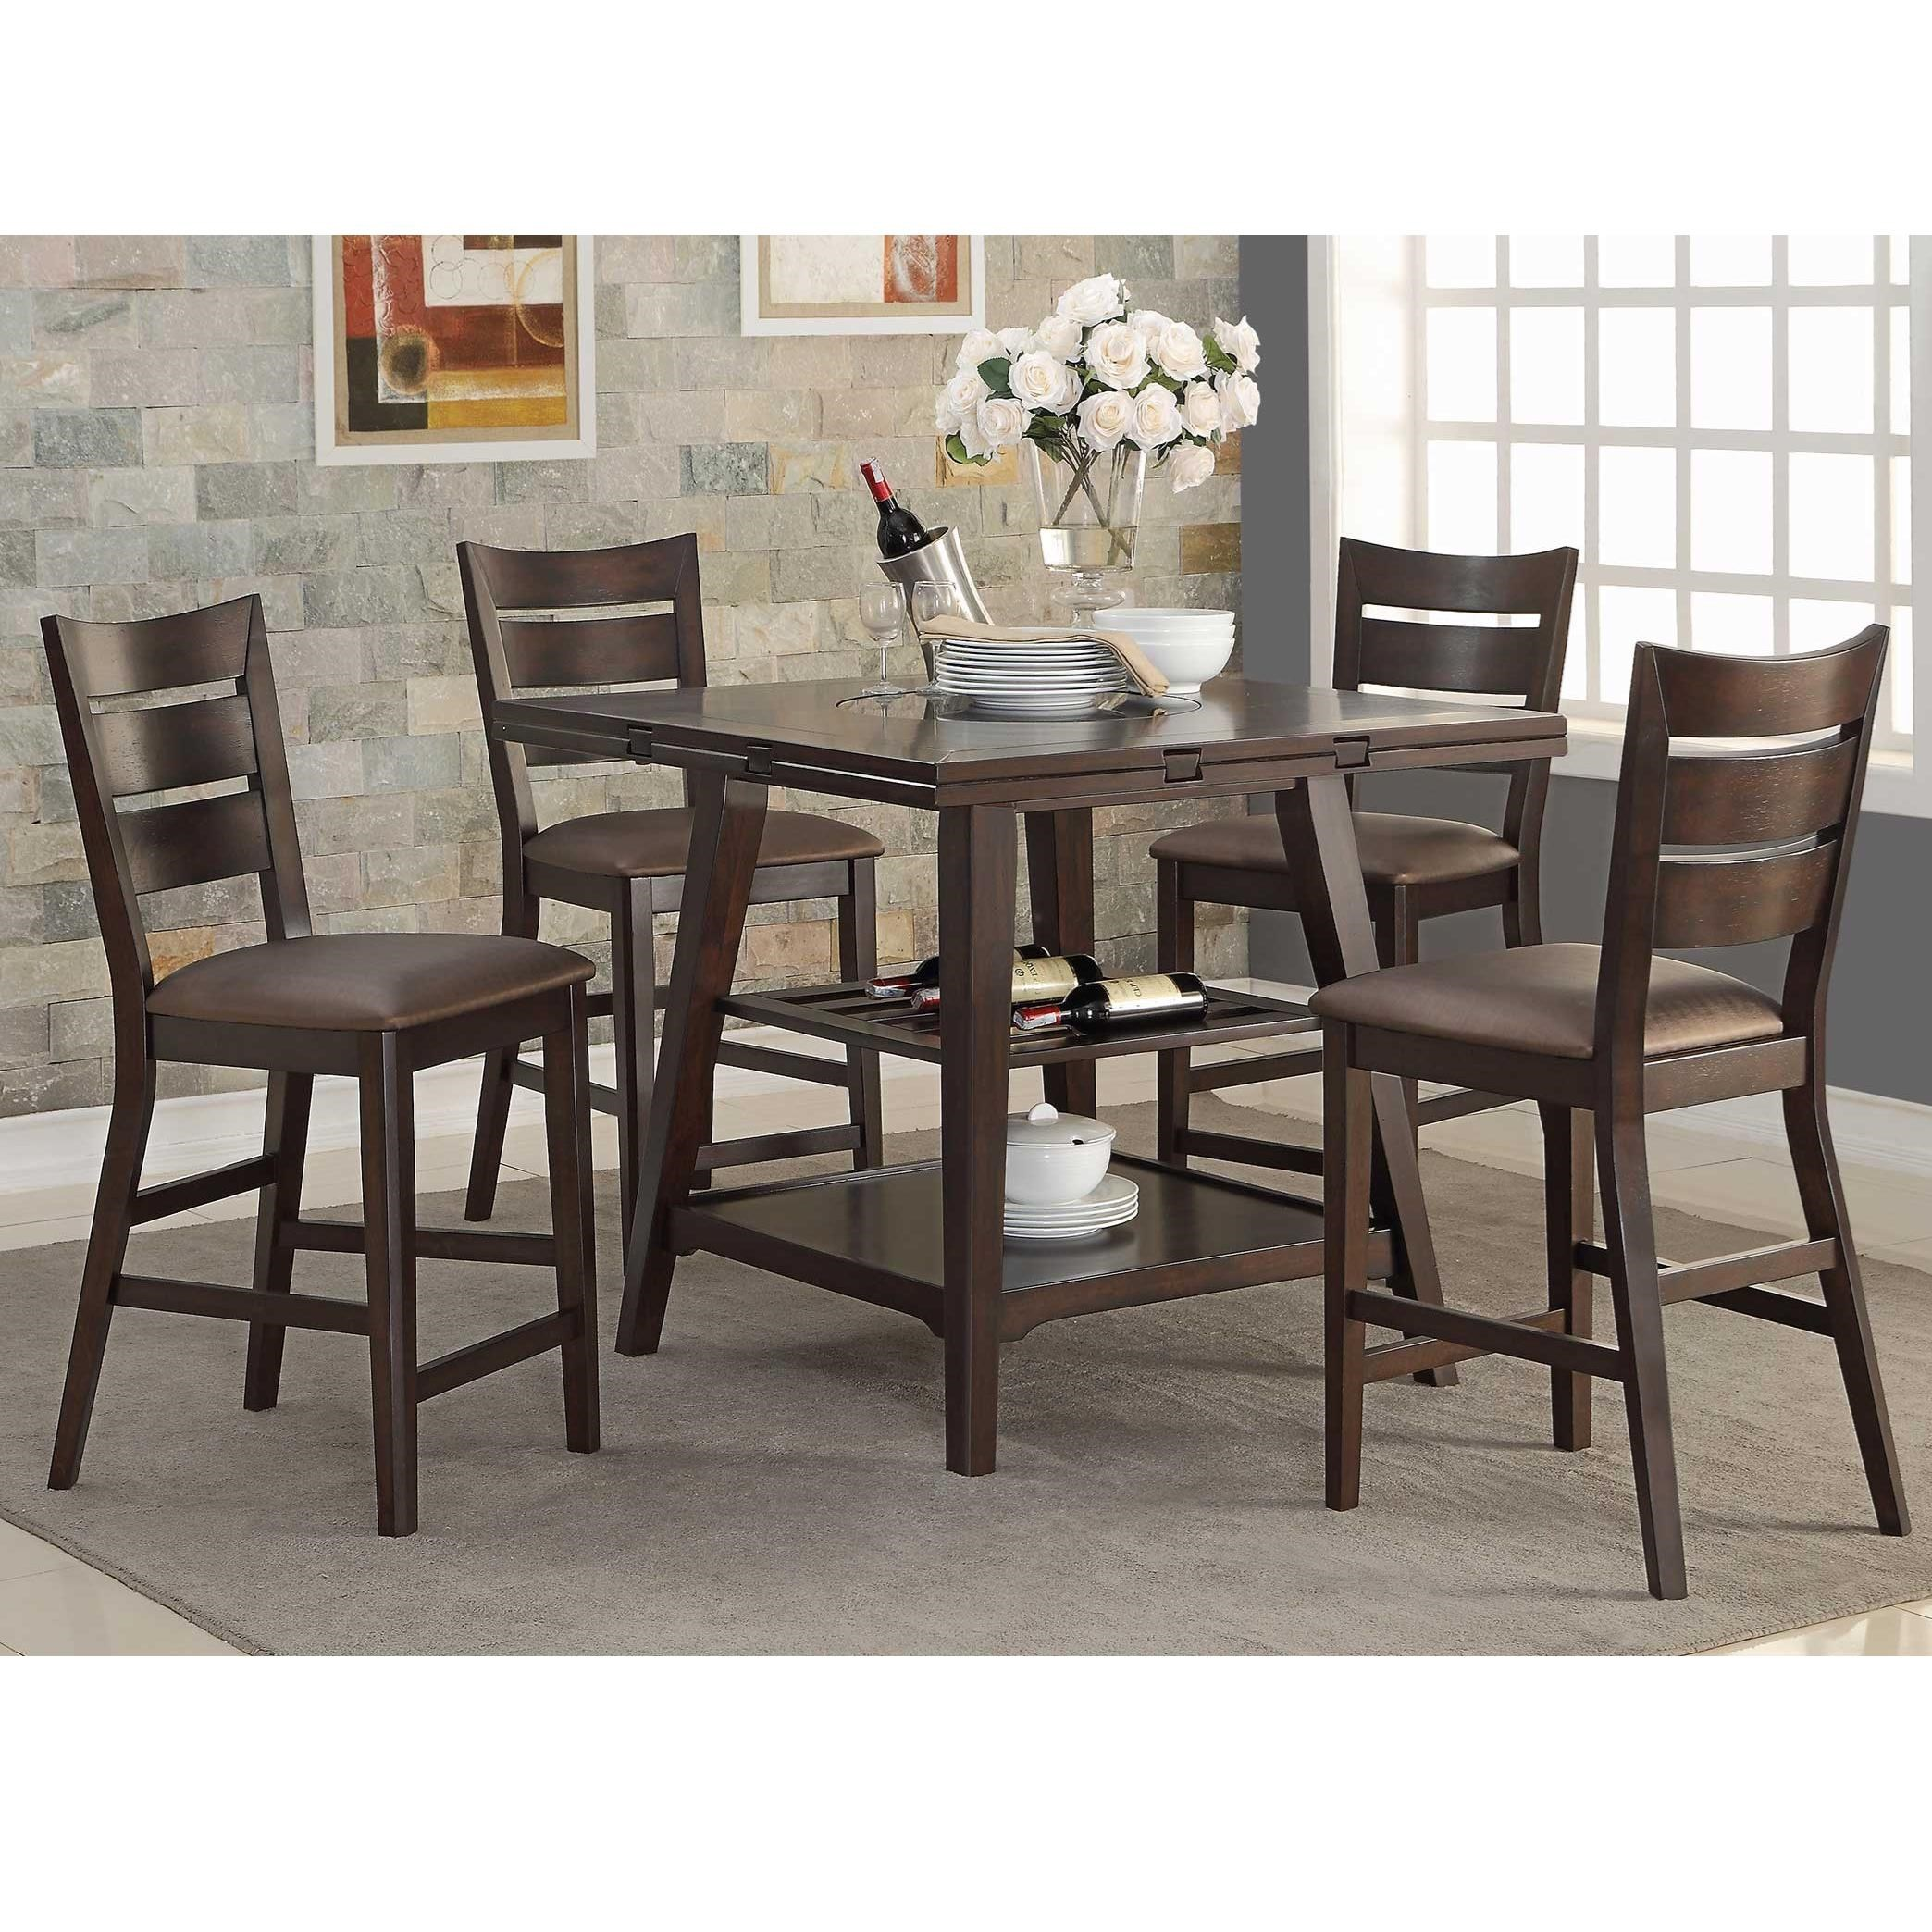 Winners Only Parkside Dpt36060x 4x45024x 5 Piece Counter Height Dining Set Dunk Bright Furniture Pub Table And Stool Sets